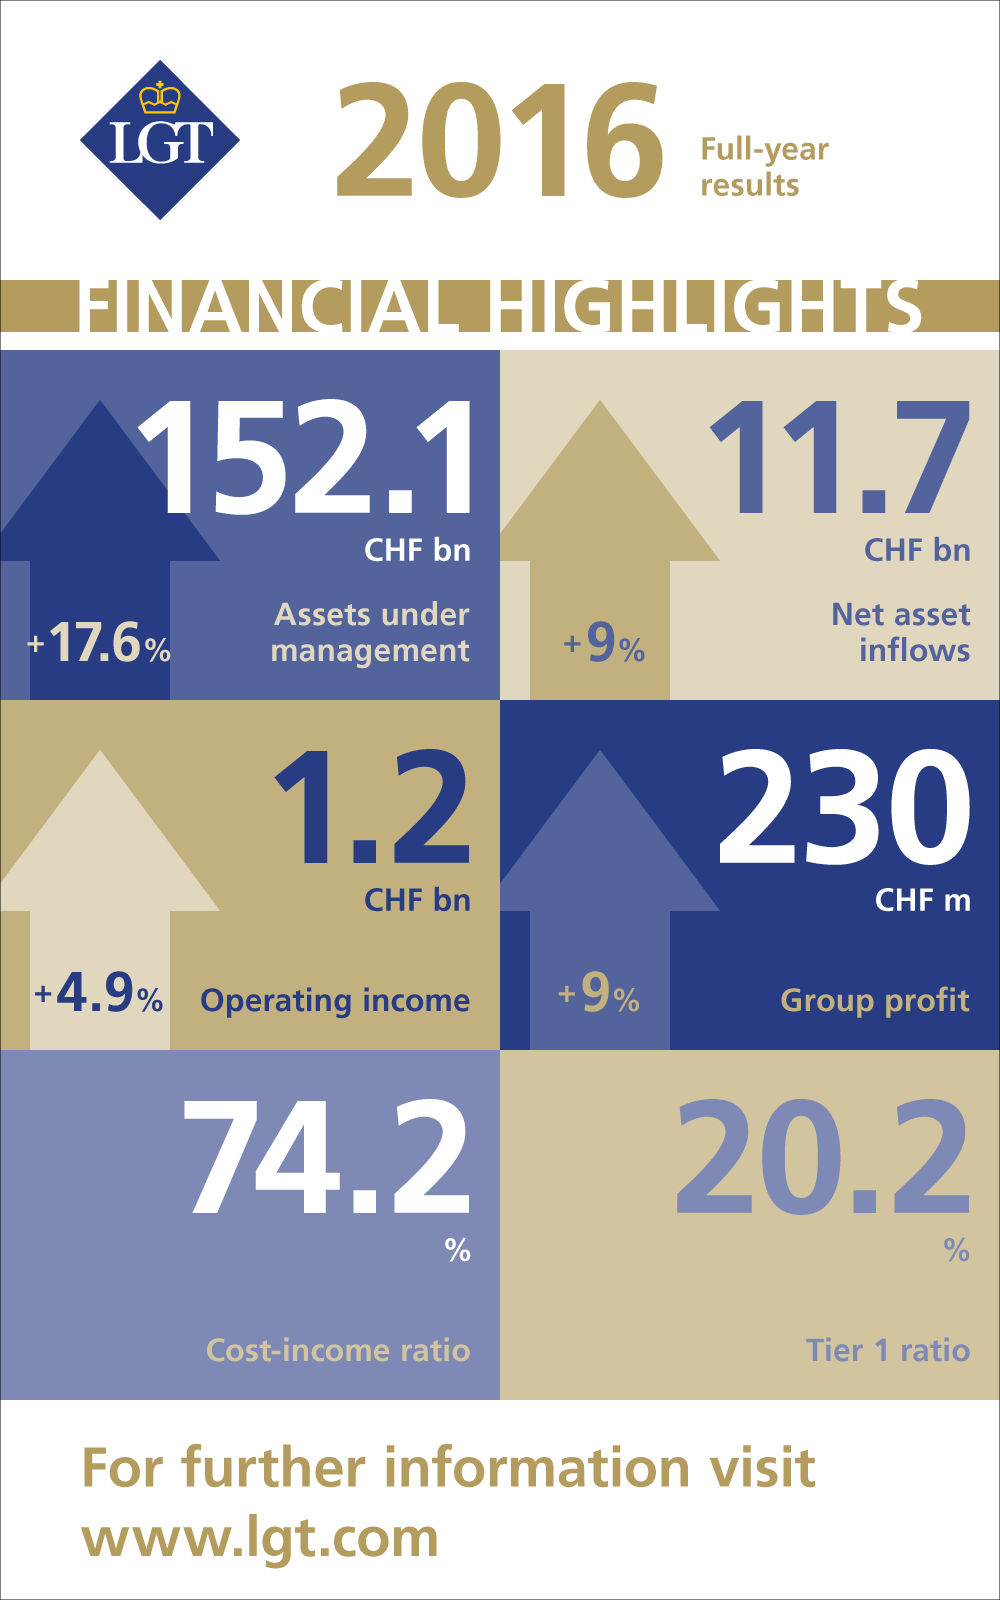 LGT Financial Results 2016